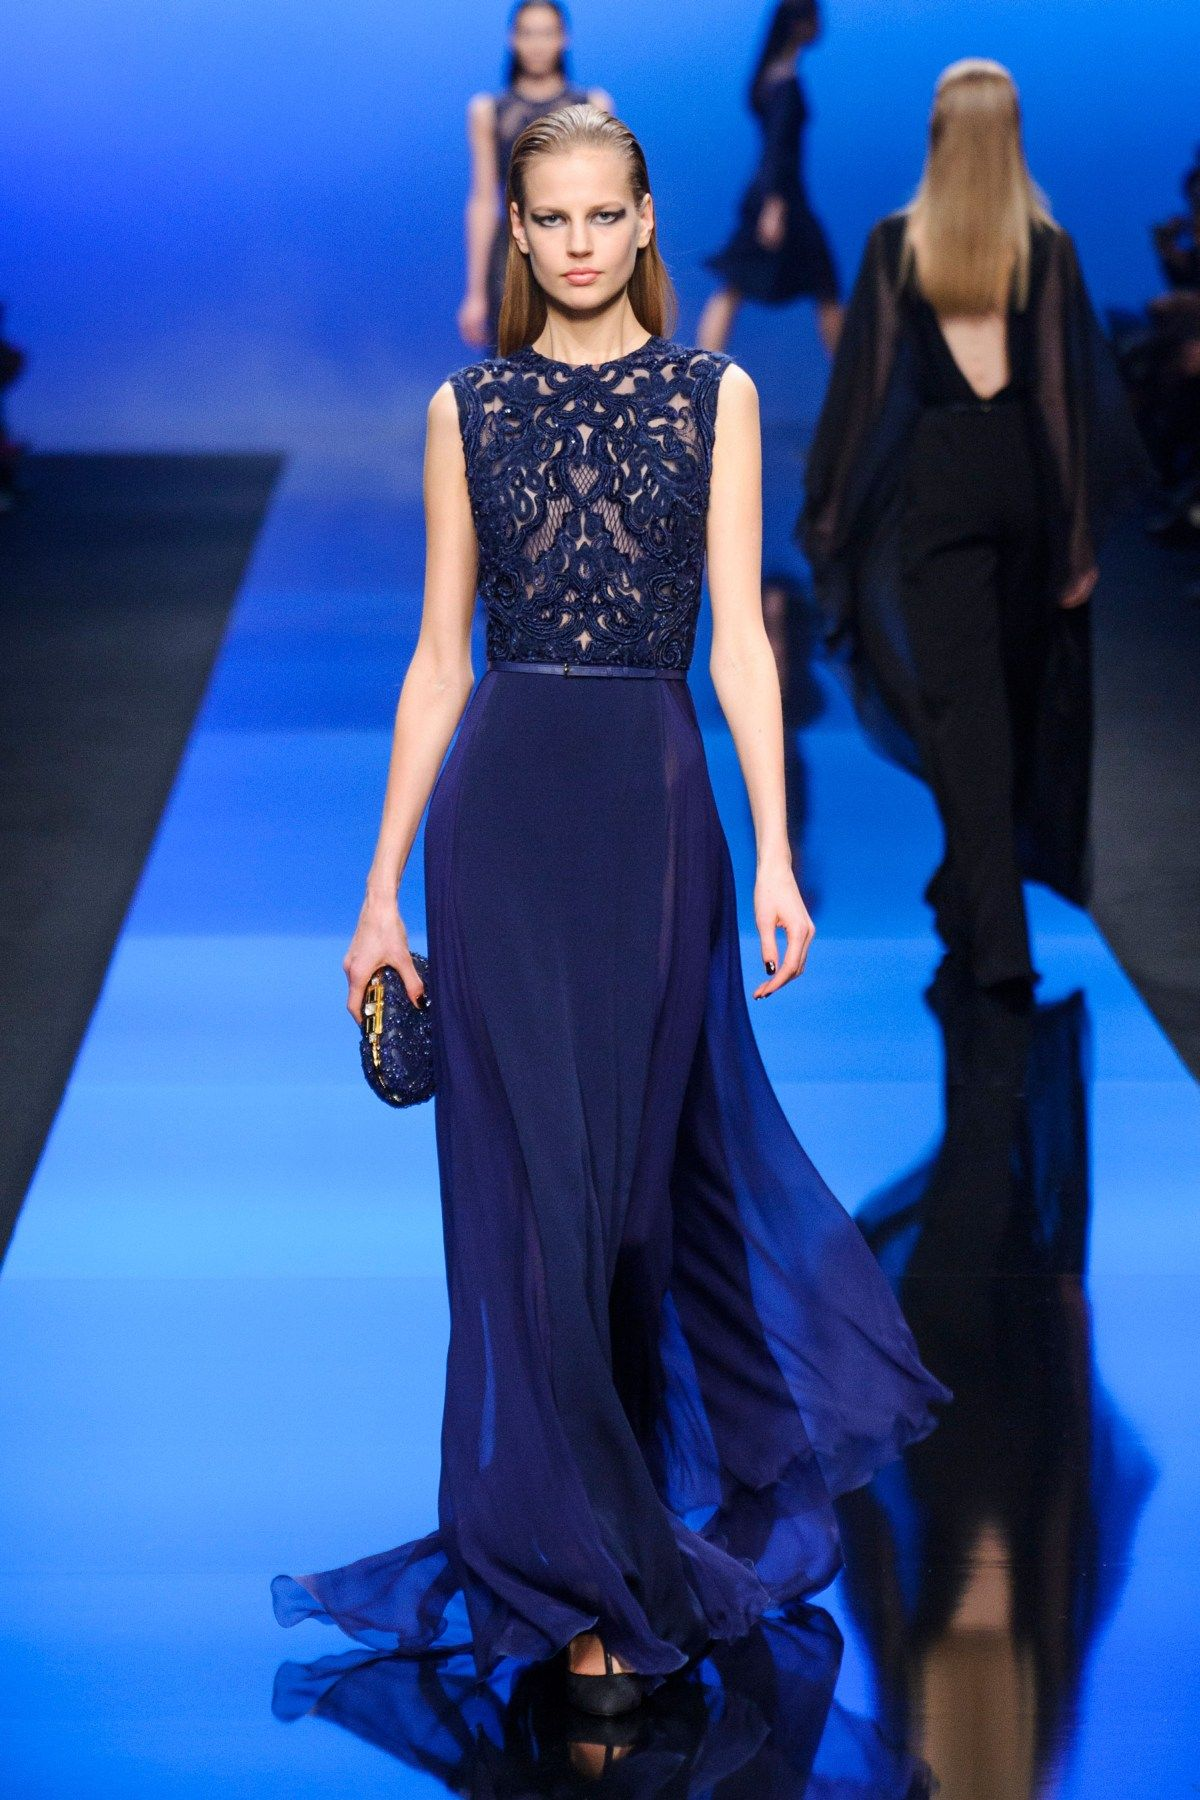 Elie Saab | Paris | Inverno 2013 RTW (Maid of Honor idea) | Things ...